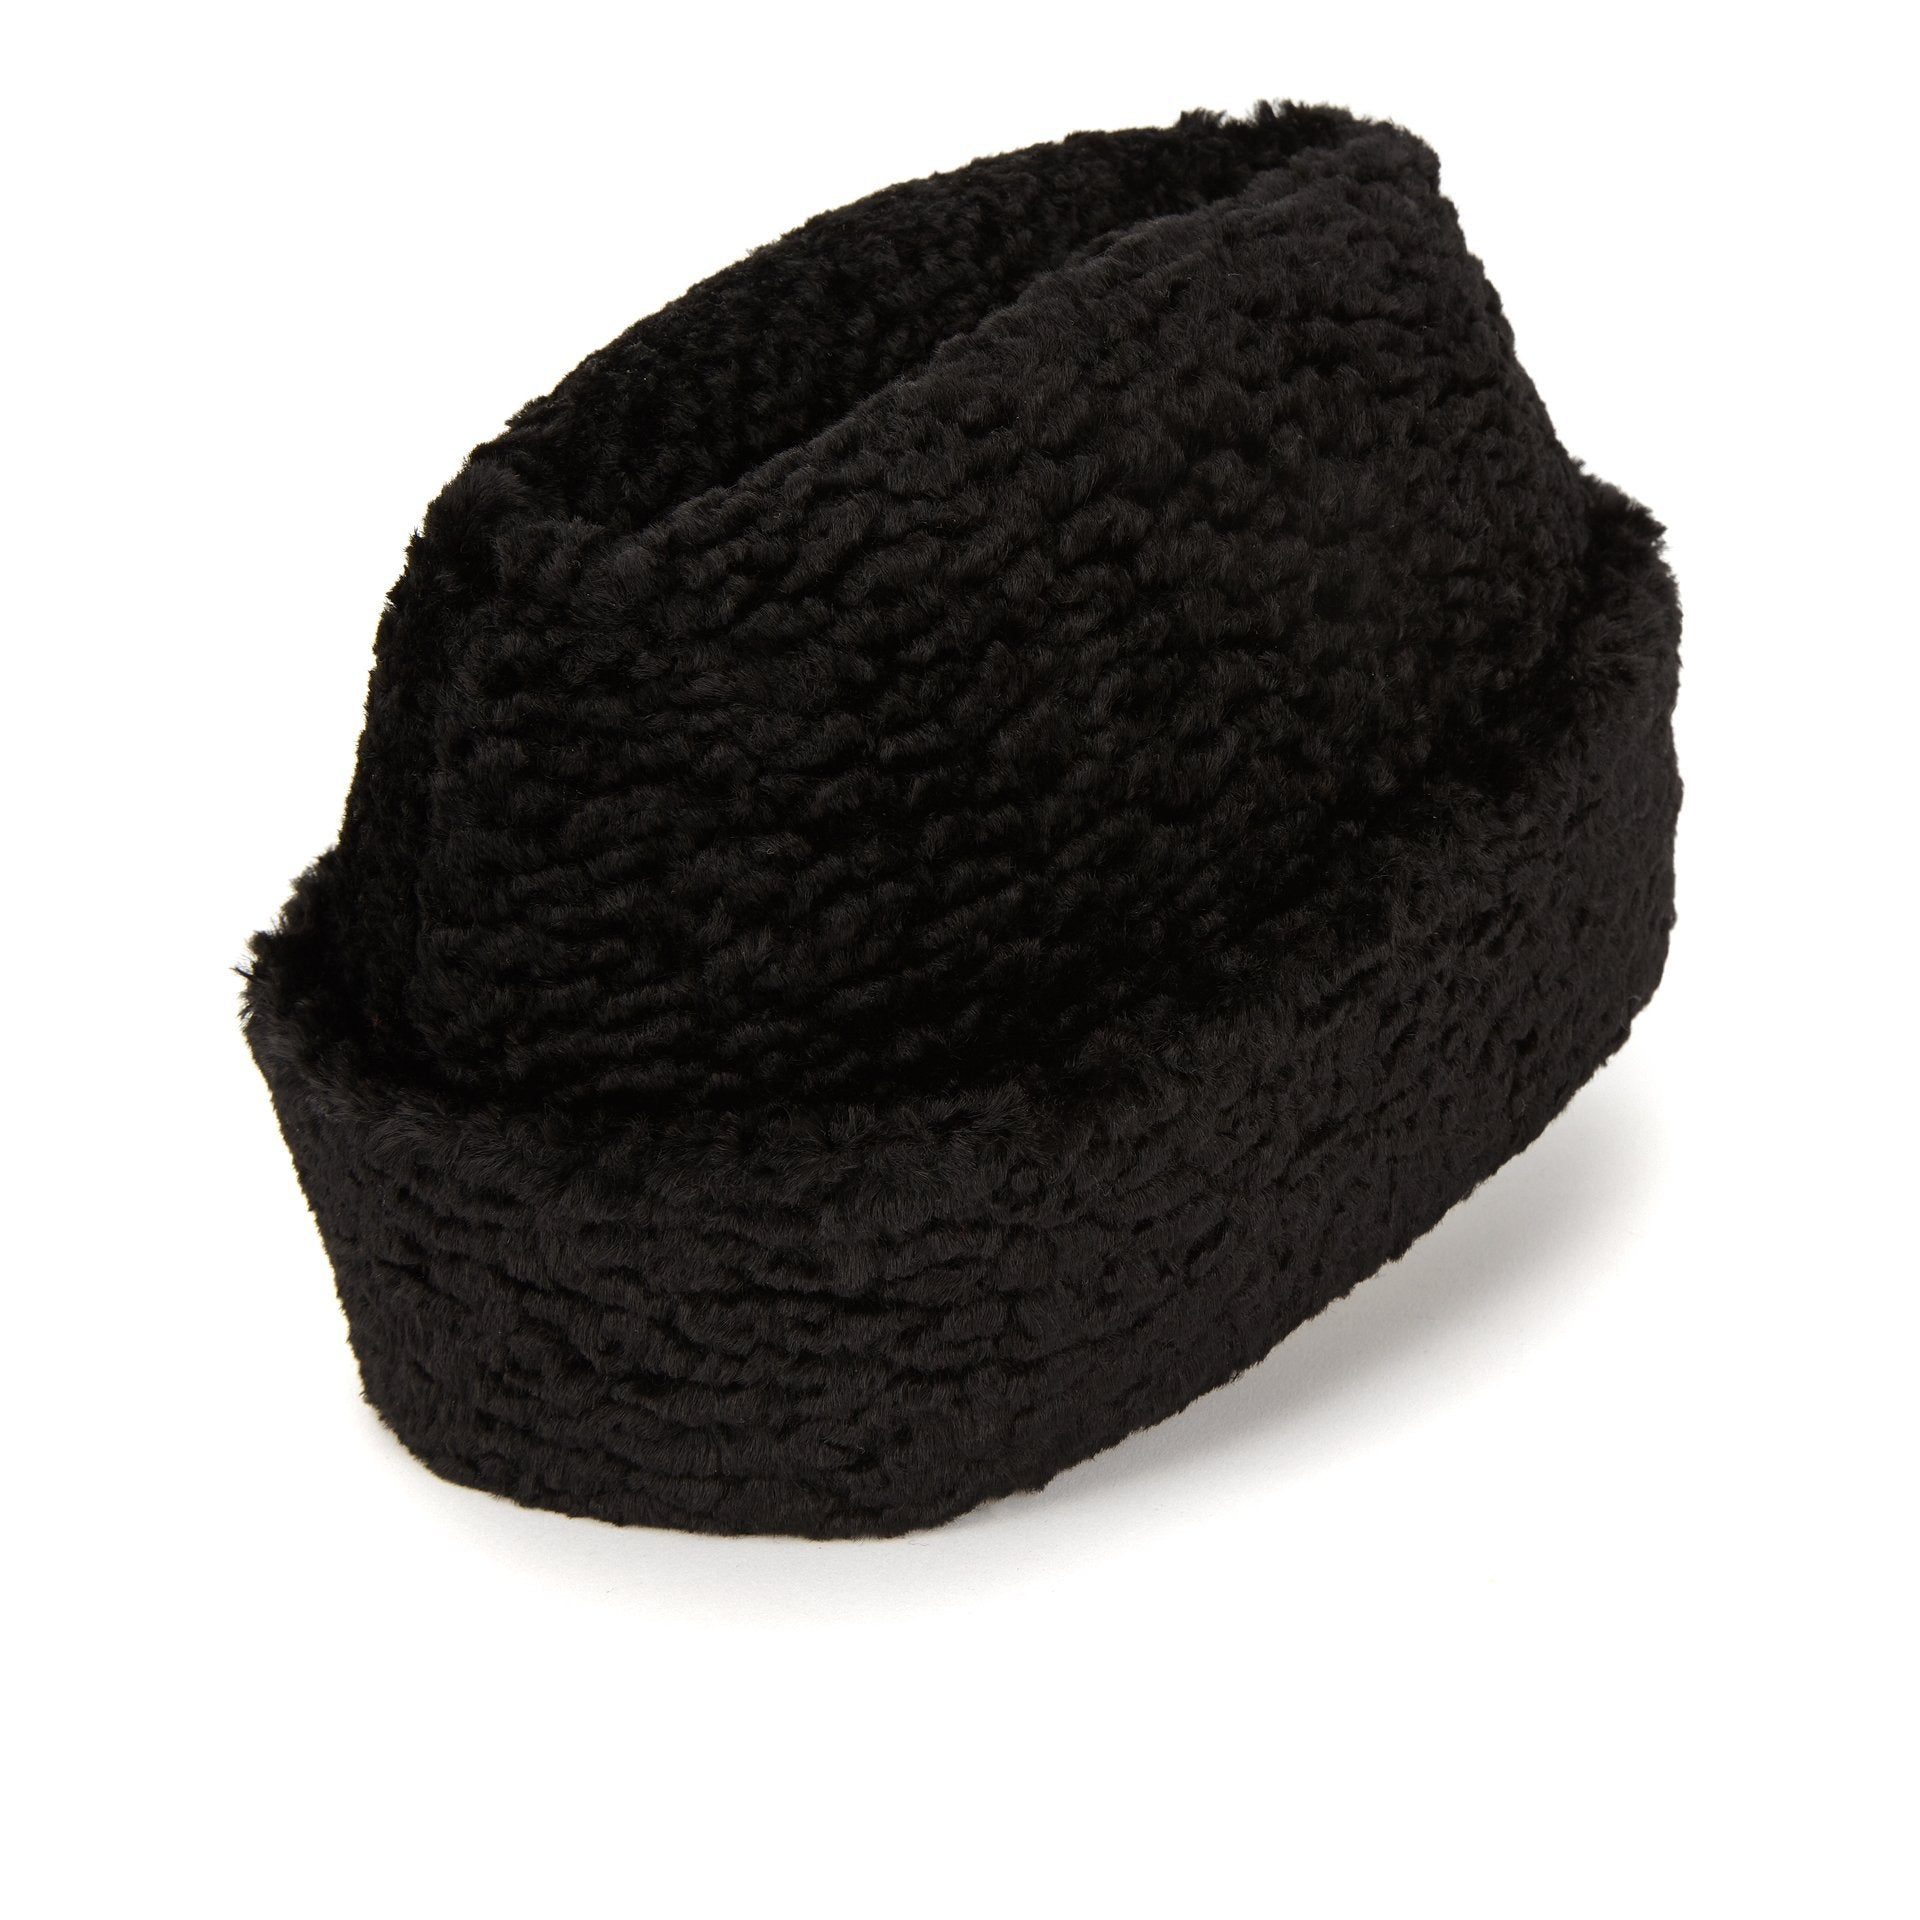 Astrakhan faux fur hat - Products - Lock & Co. Hatters London UK